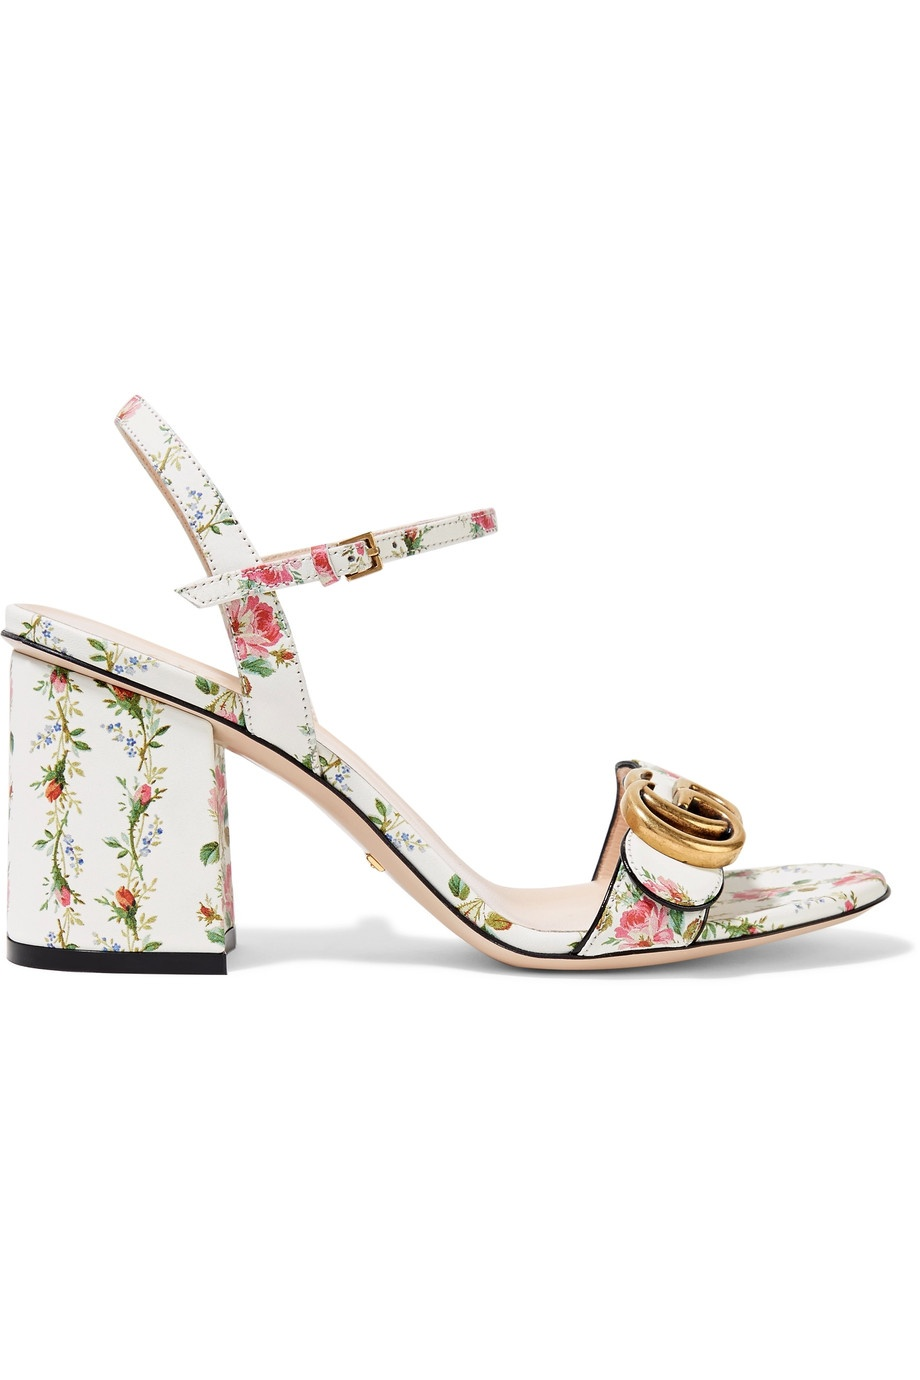 GUCCI Floral-print leather sandals